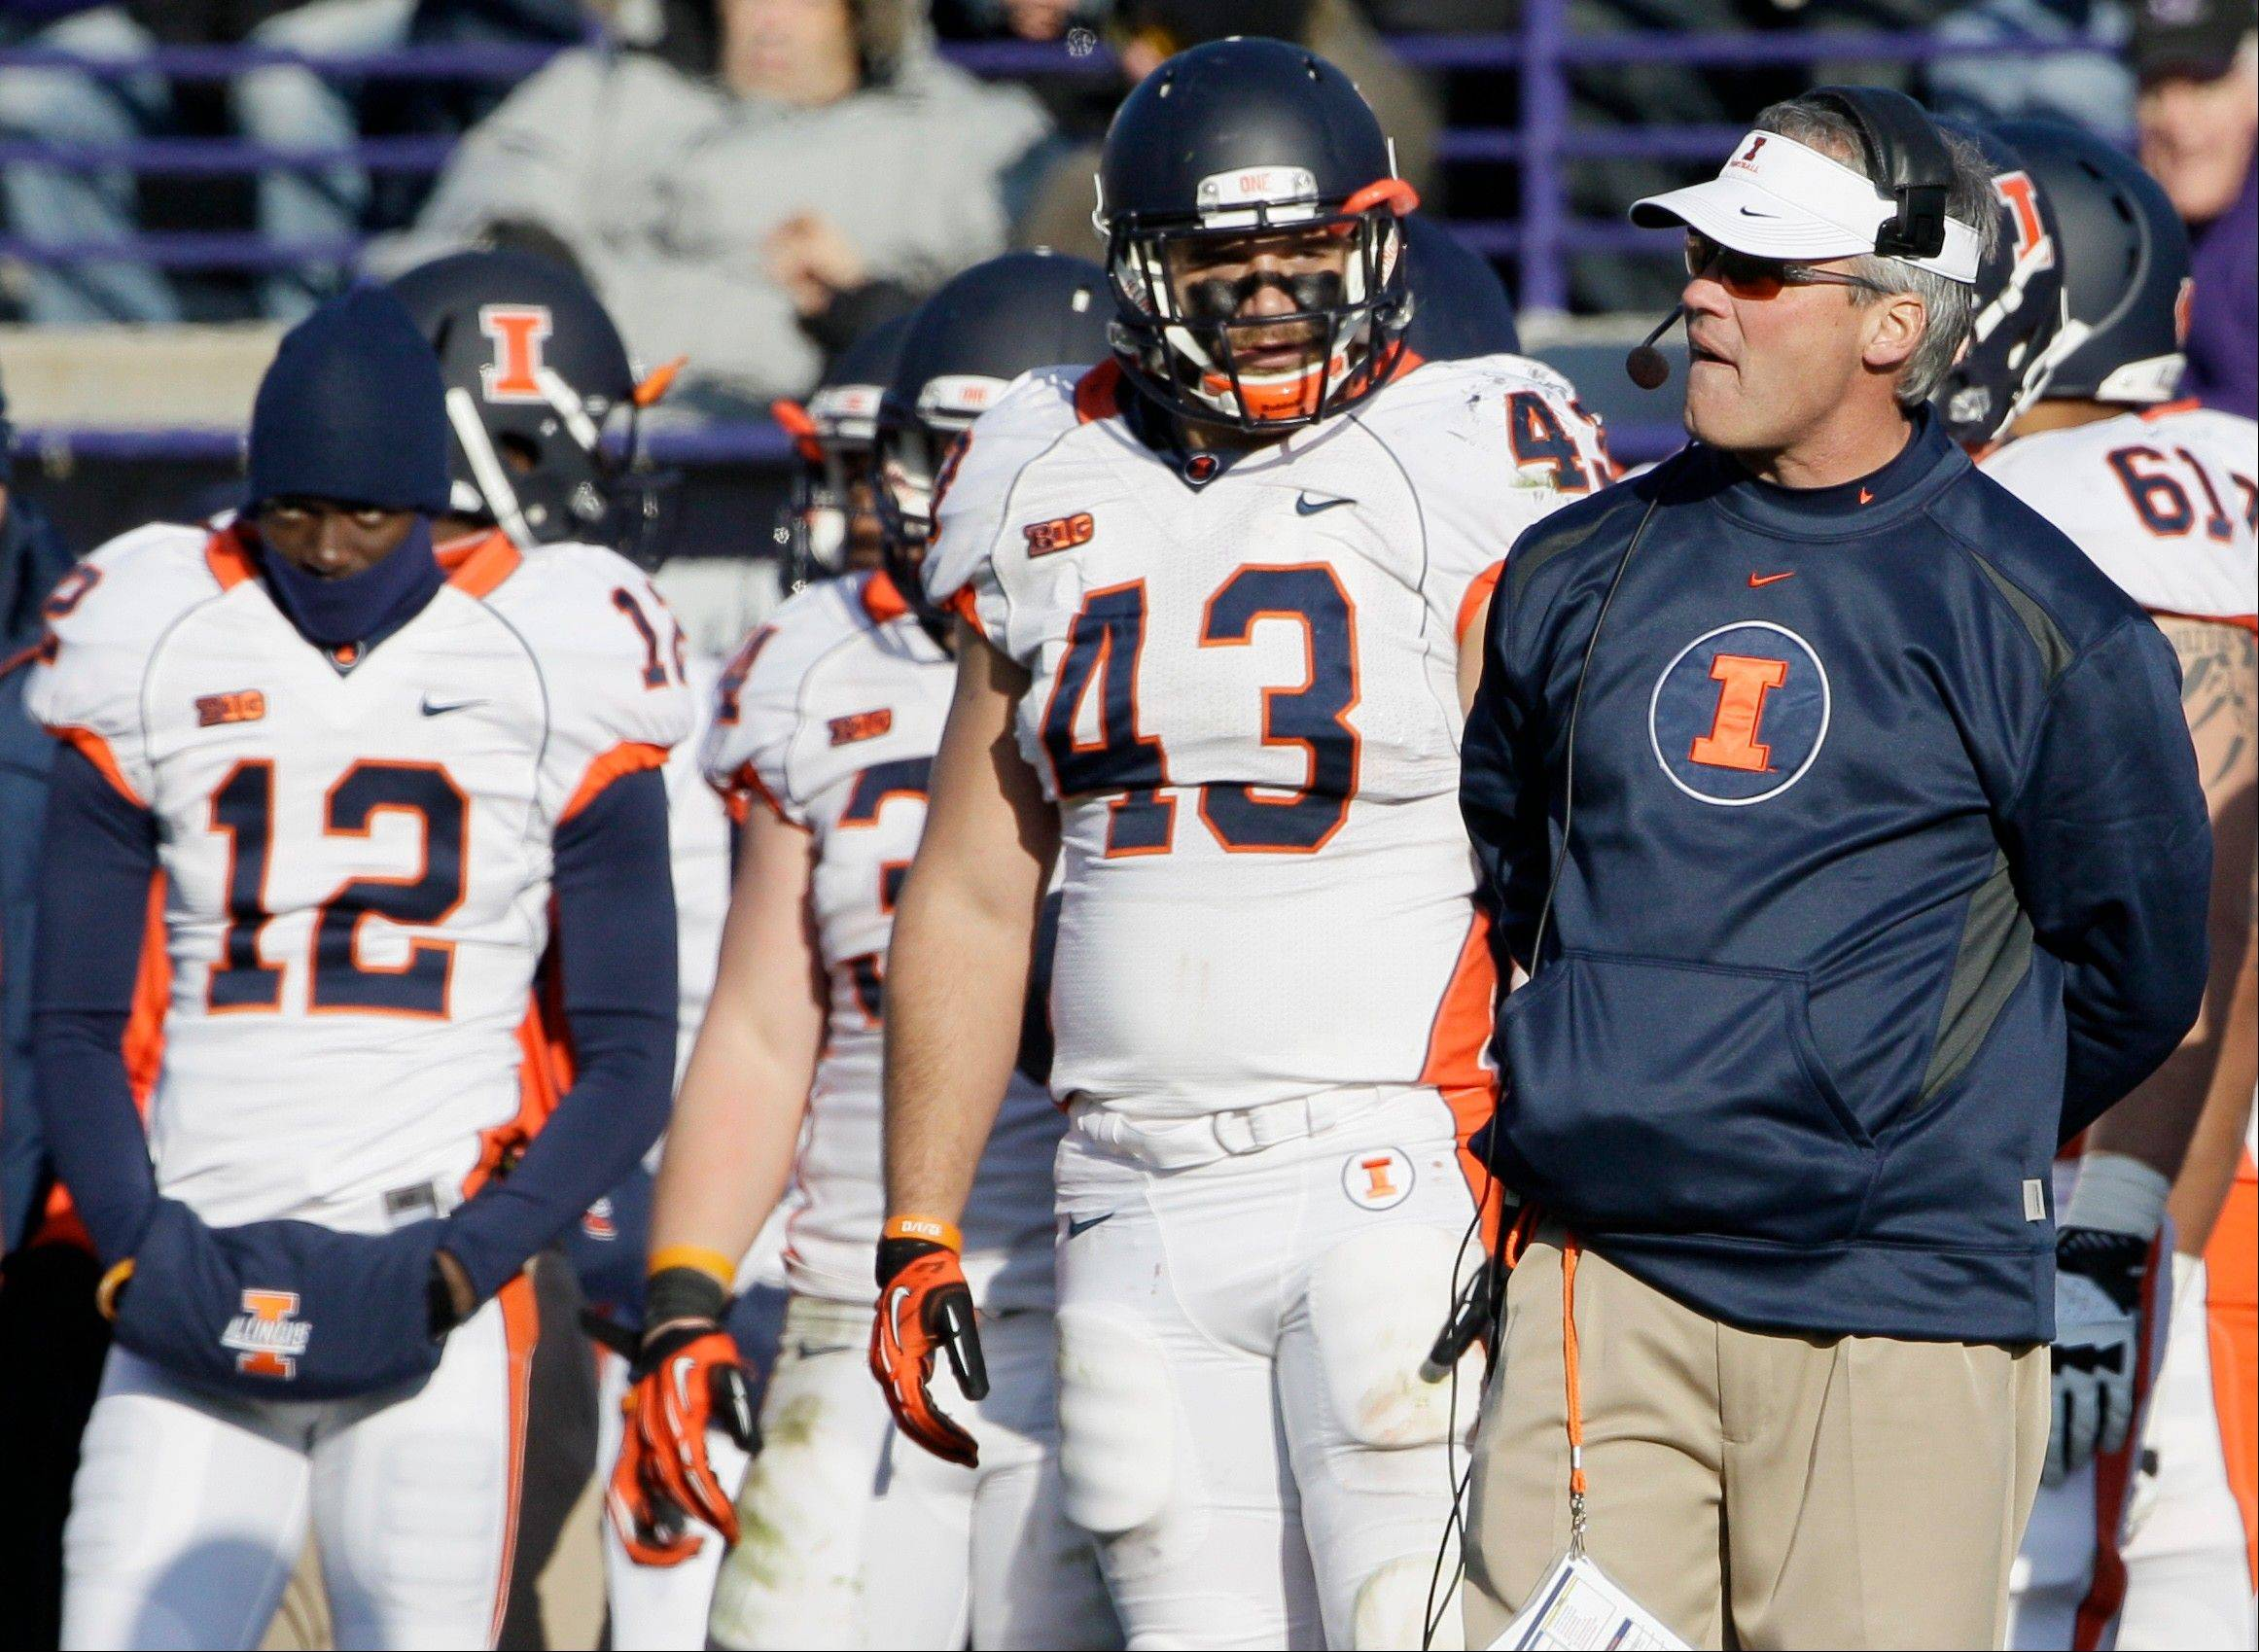 Illinois head coach Tim Beckman, right, reacts as he watches his team Saturday during the second half against Northwestern in Evanston. Northwestern won 50-14.